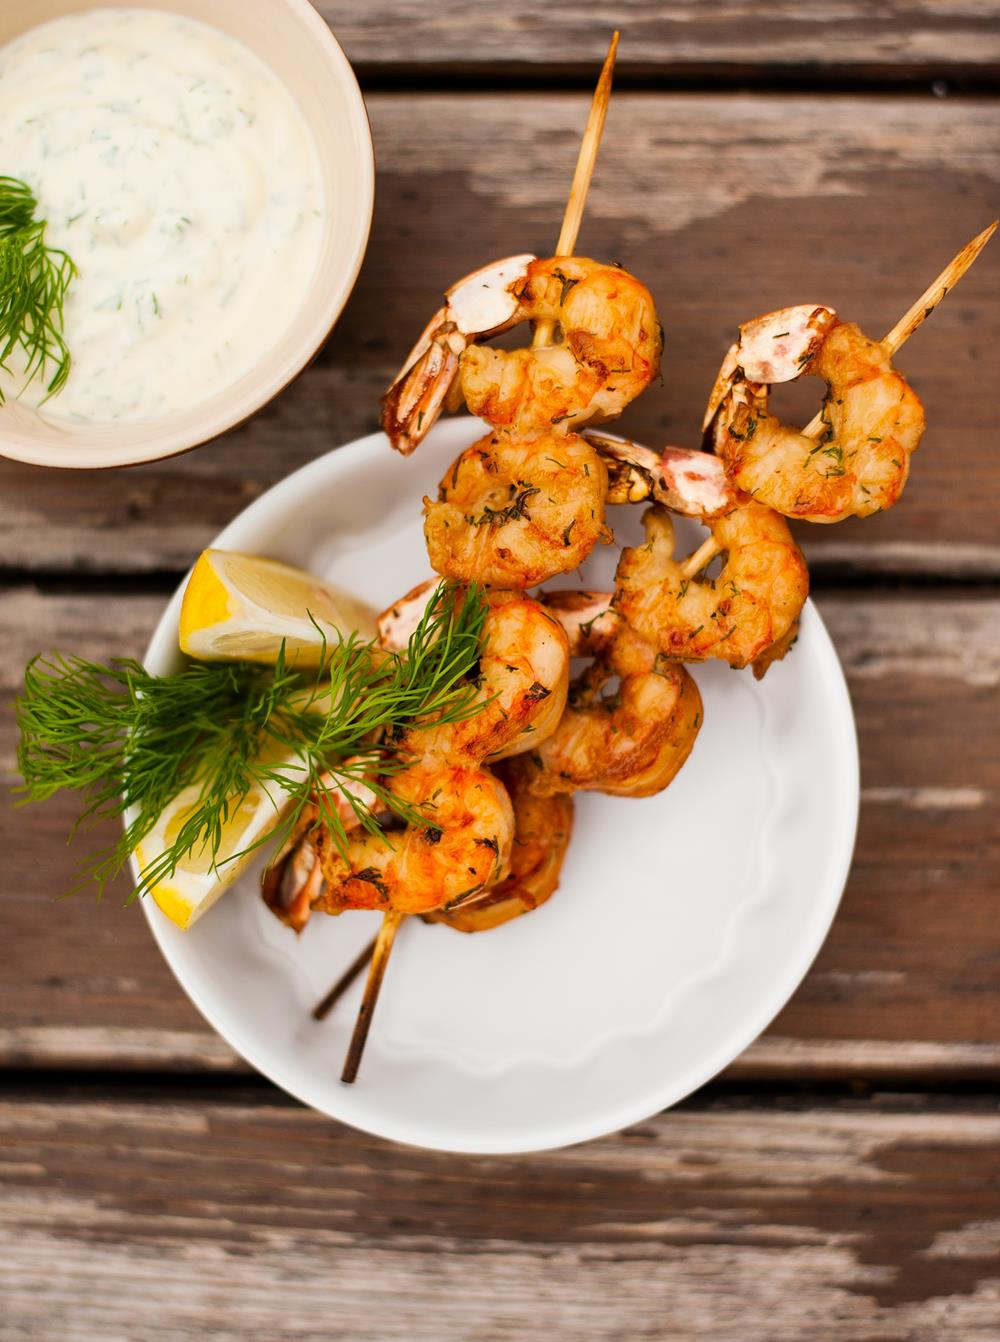 Online Personal Trainer Lunch Recipes -Hot & Spicy Prawns.jpg